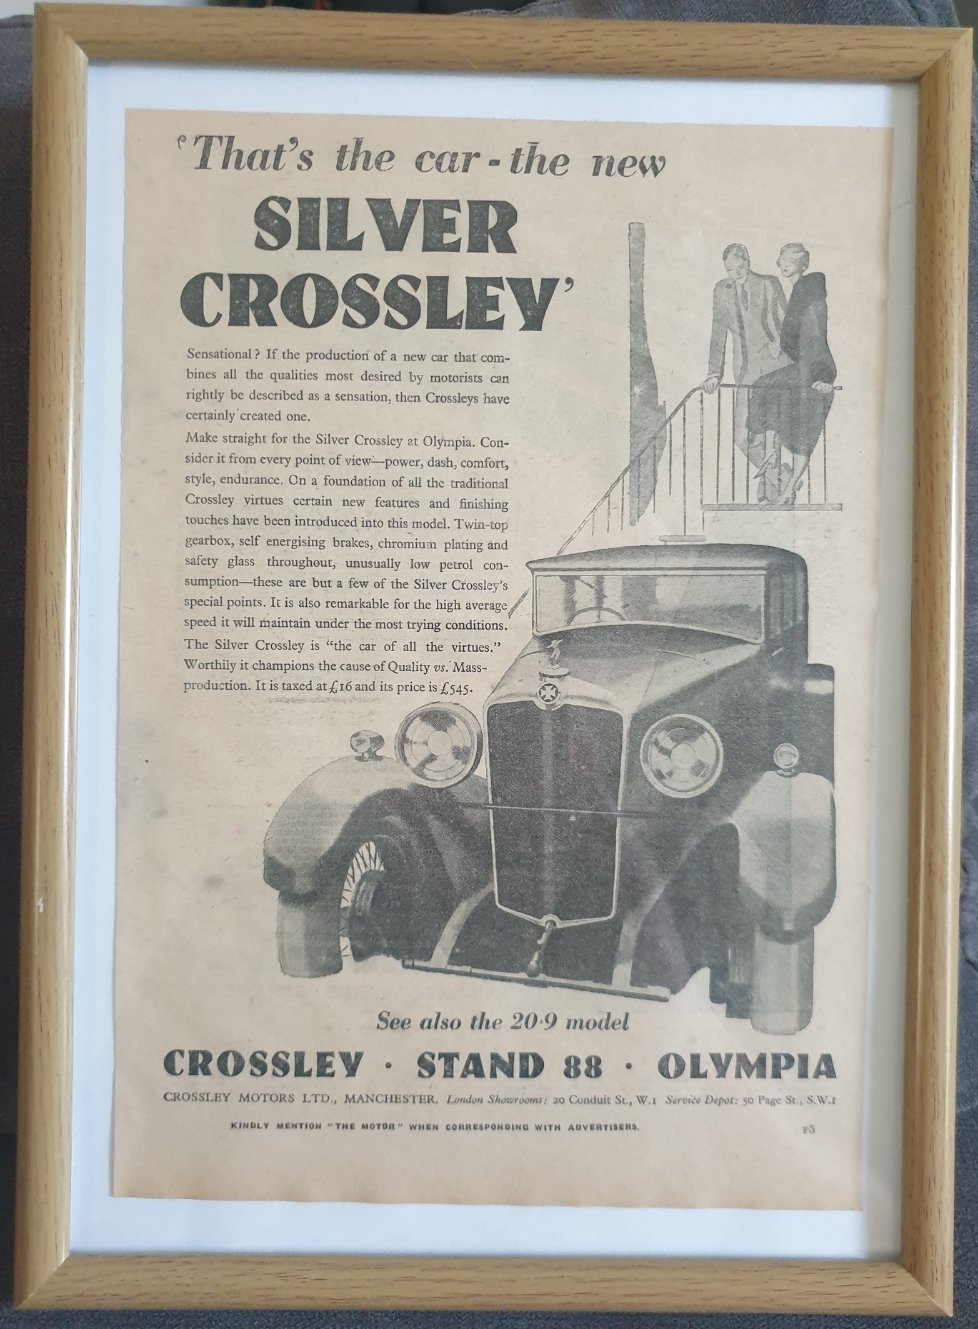 1965 Original 1930 Silver Crossley Framed Advert  For Sale (picture 1 of 3)